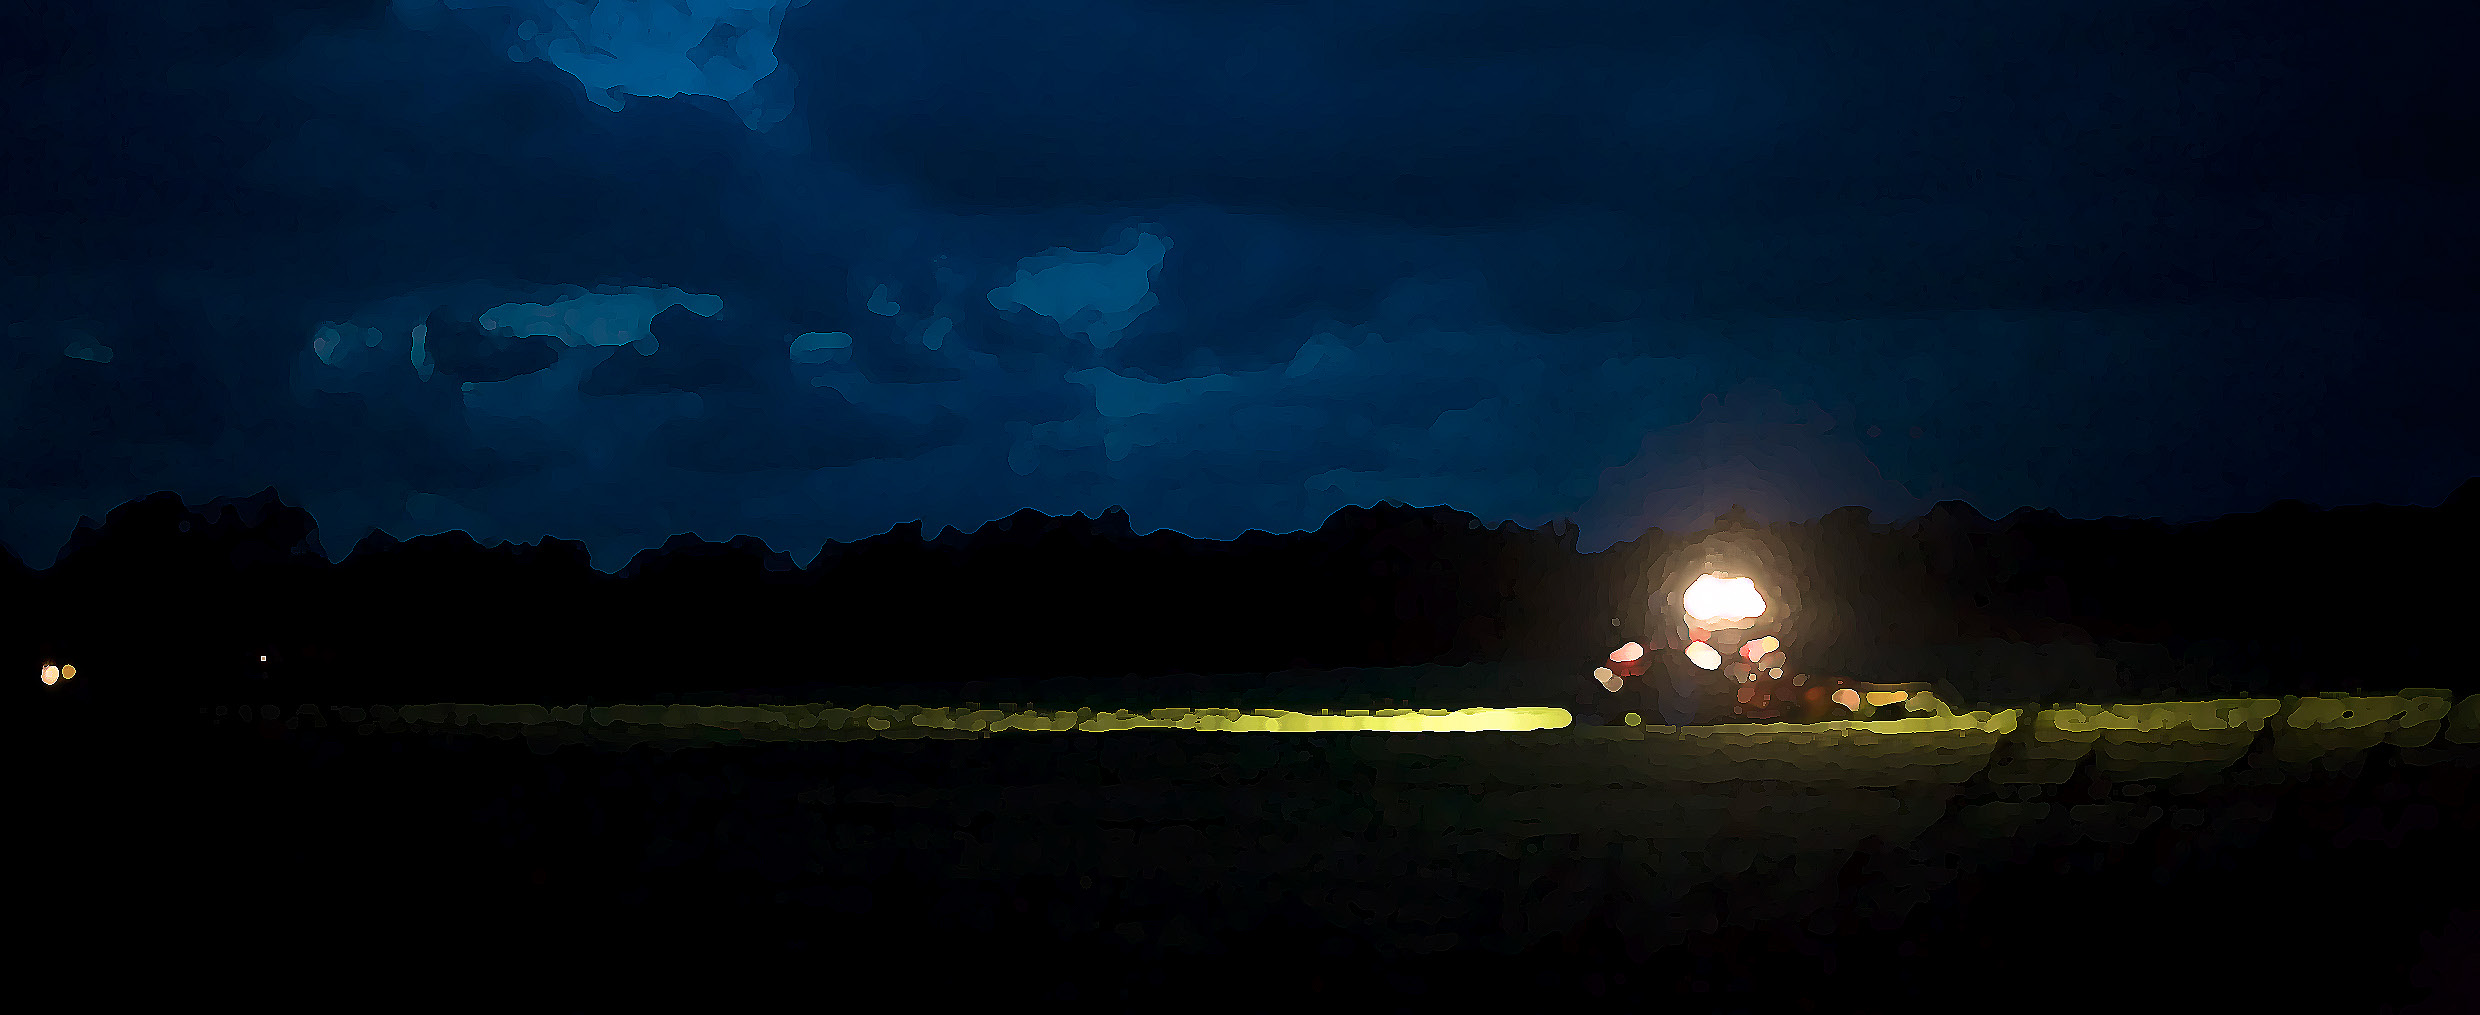 Sprayer LED 2015 Dan Phiffer - CC-BY - The day is over